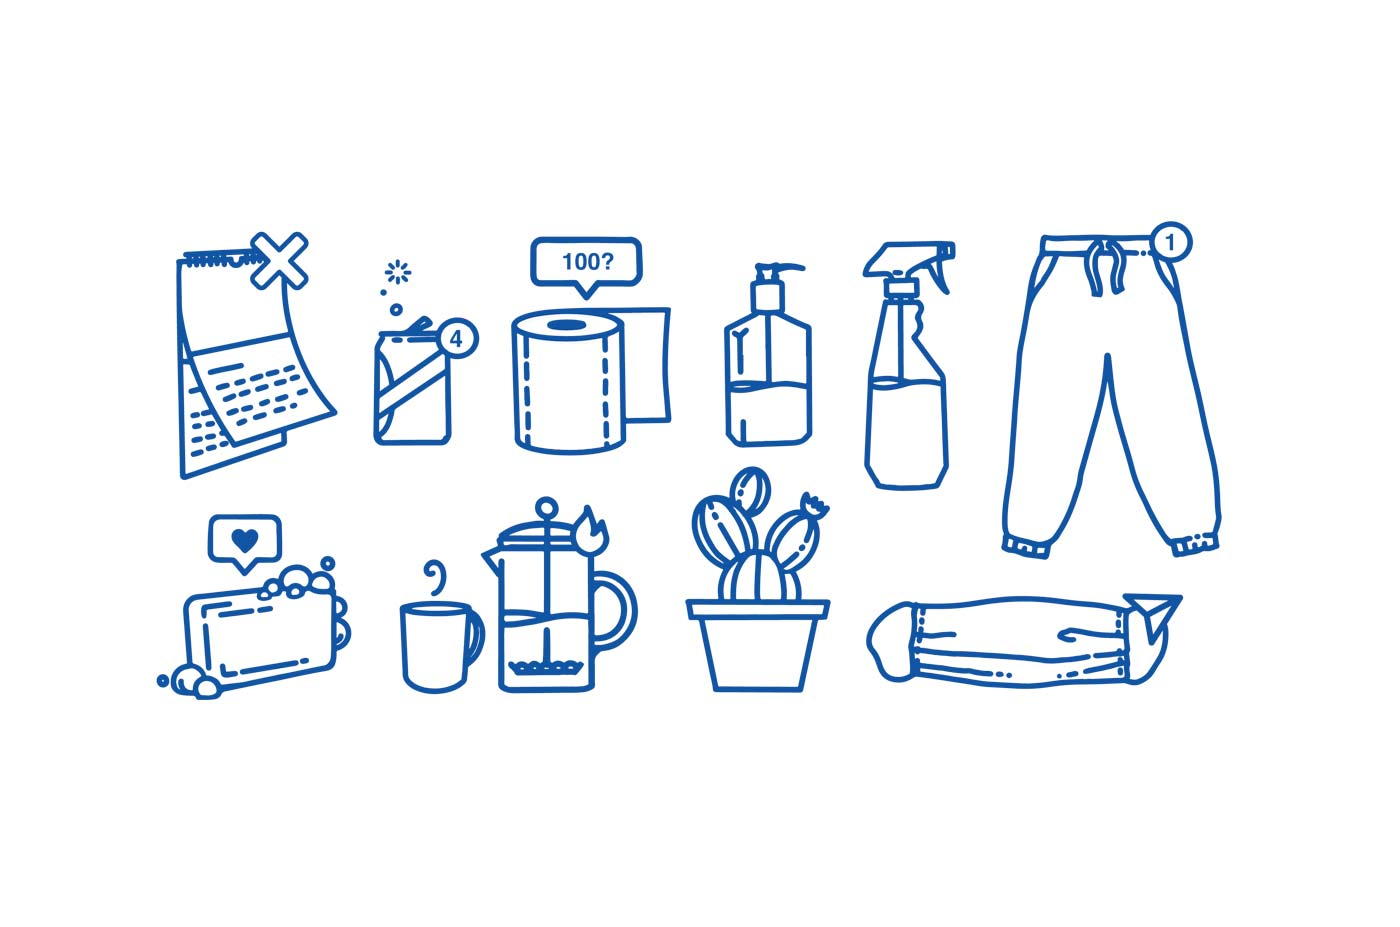 Illustration icons by Brittany Norris about working from home during COVID-19 or coronavirus